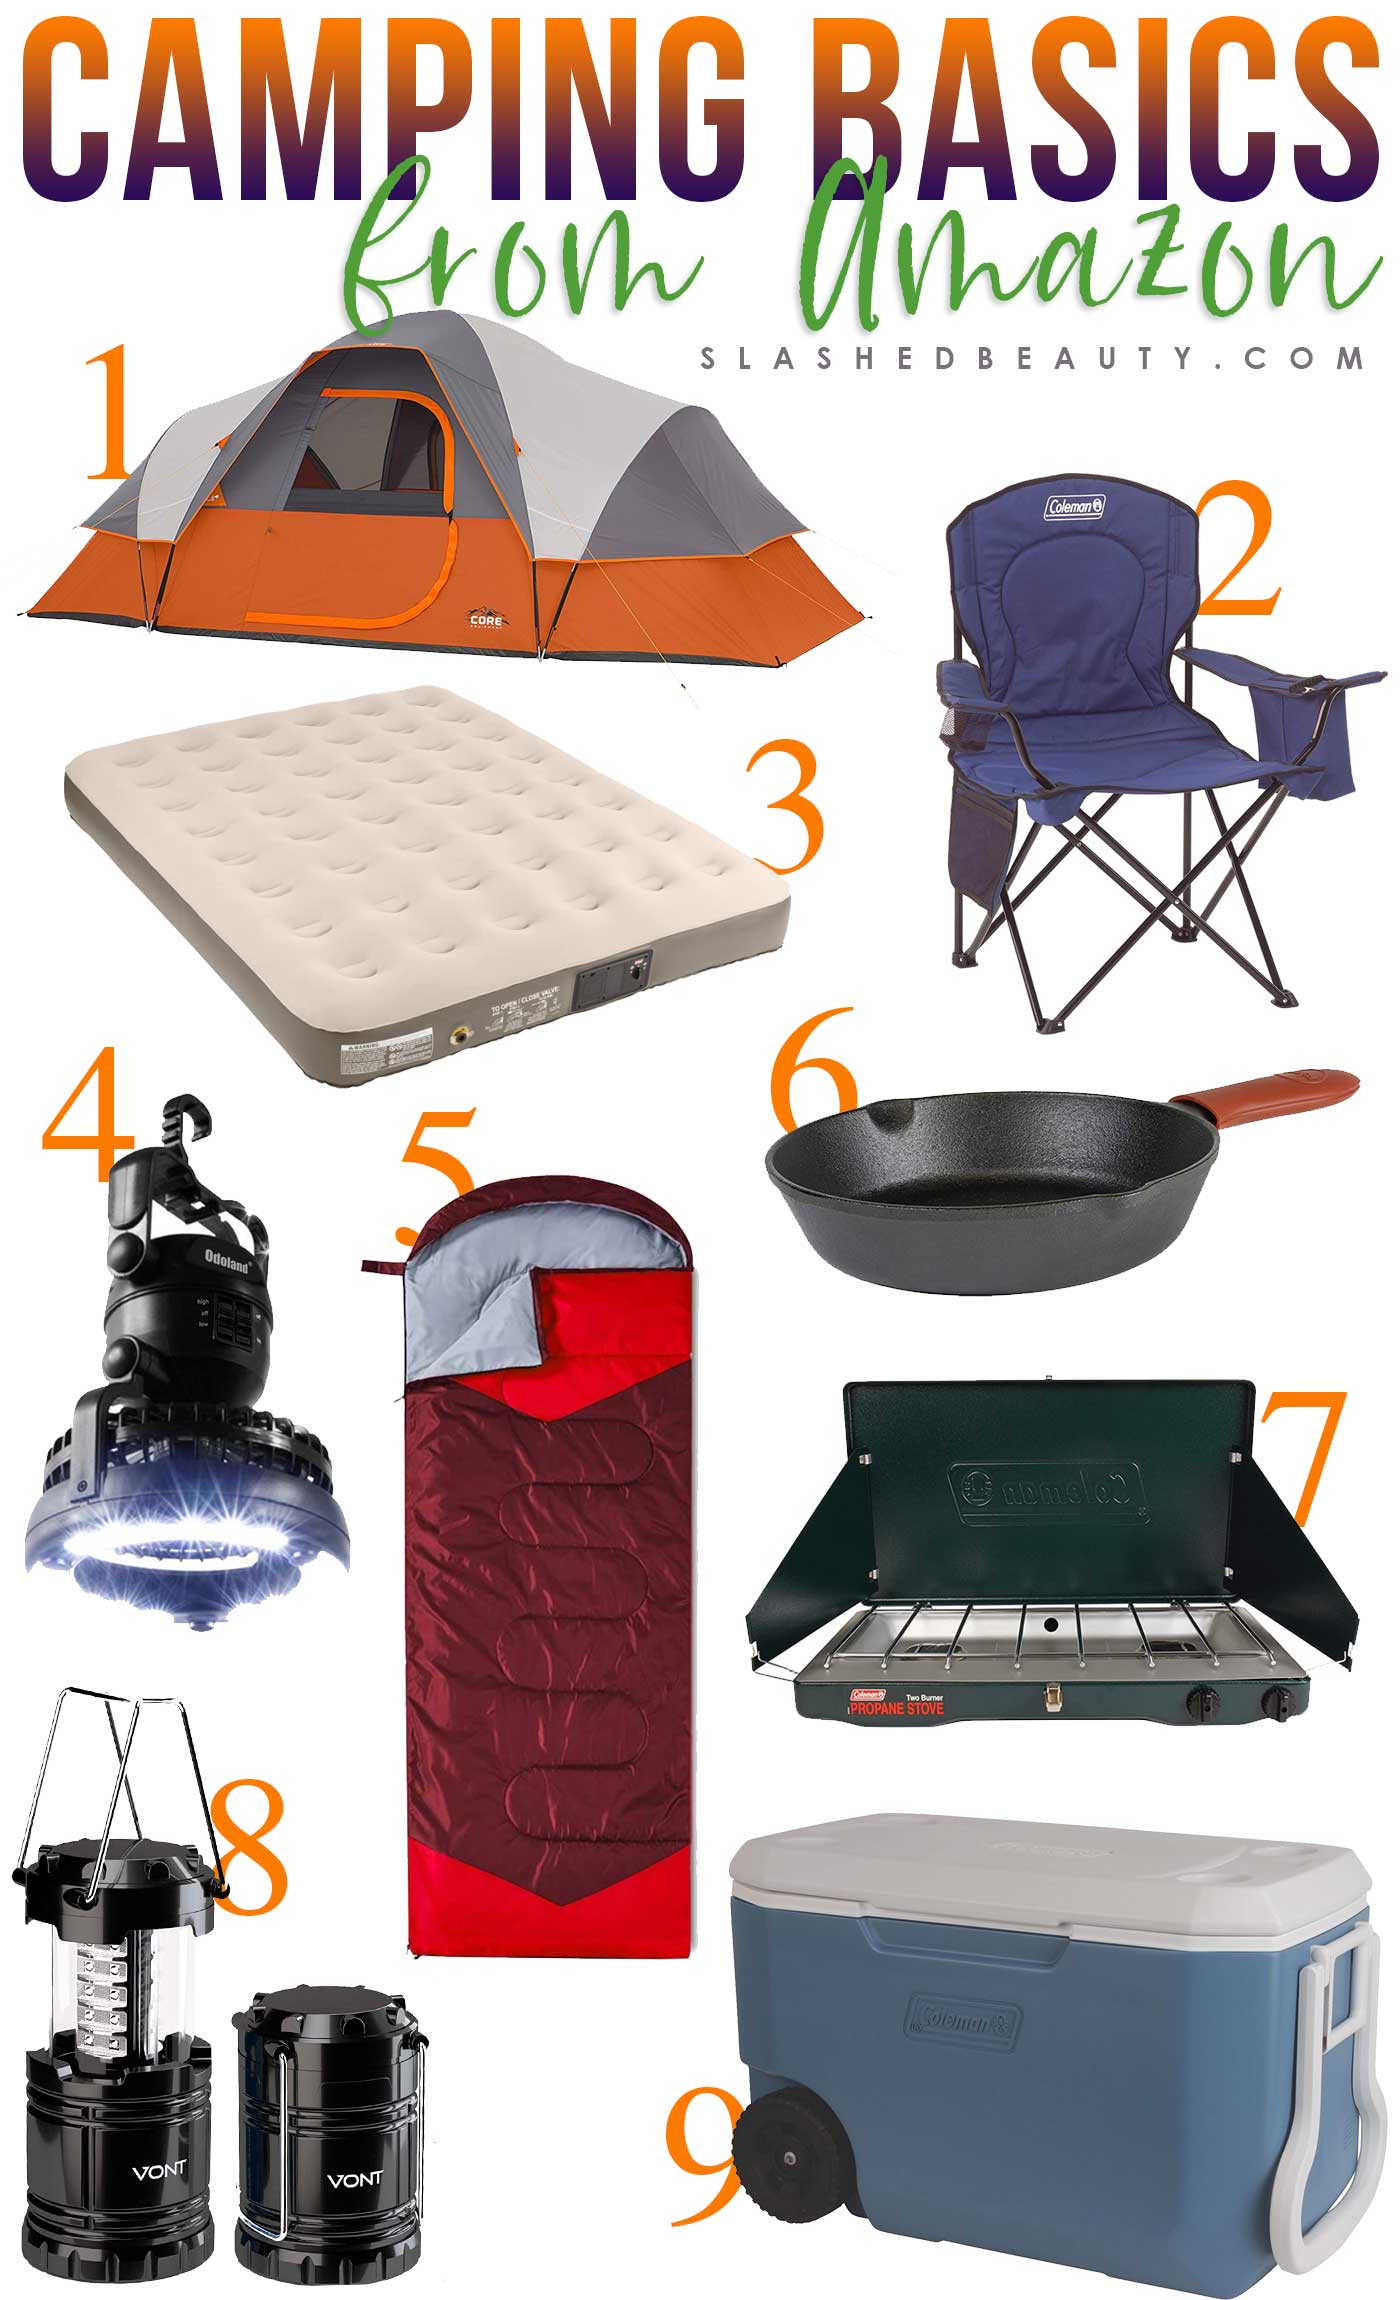 9 Basic Camping Gear Essentials from Amazon | Camping Gear for Beginners | Slashed Beauty